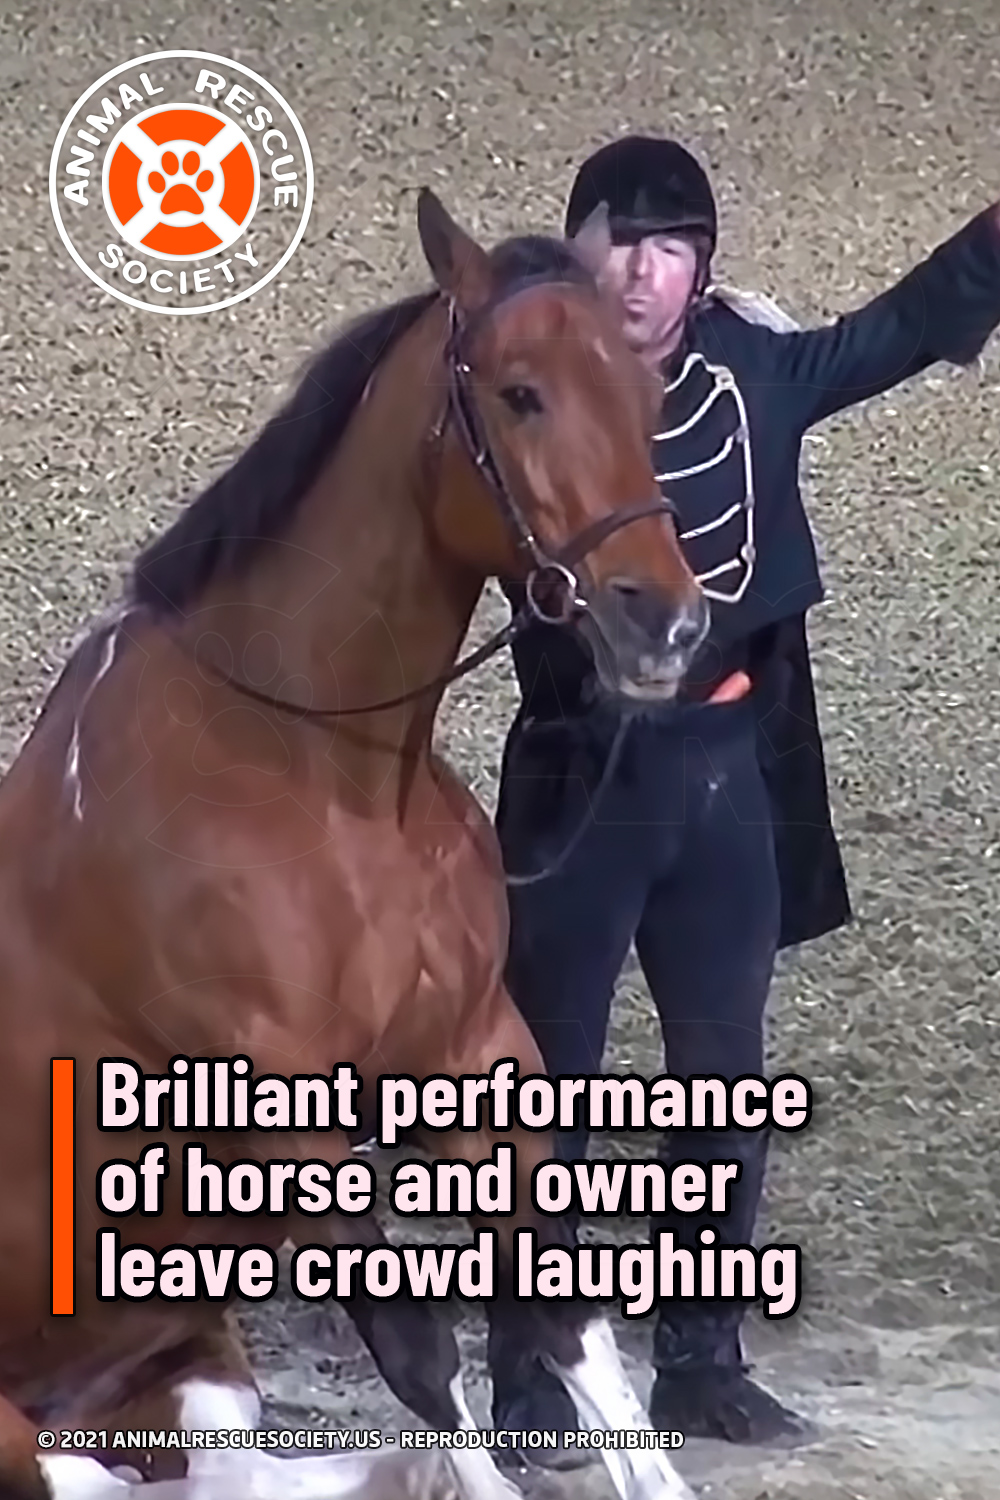 Brilliant performance of horse and owner leave crowd laughing